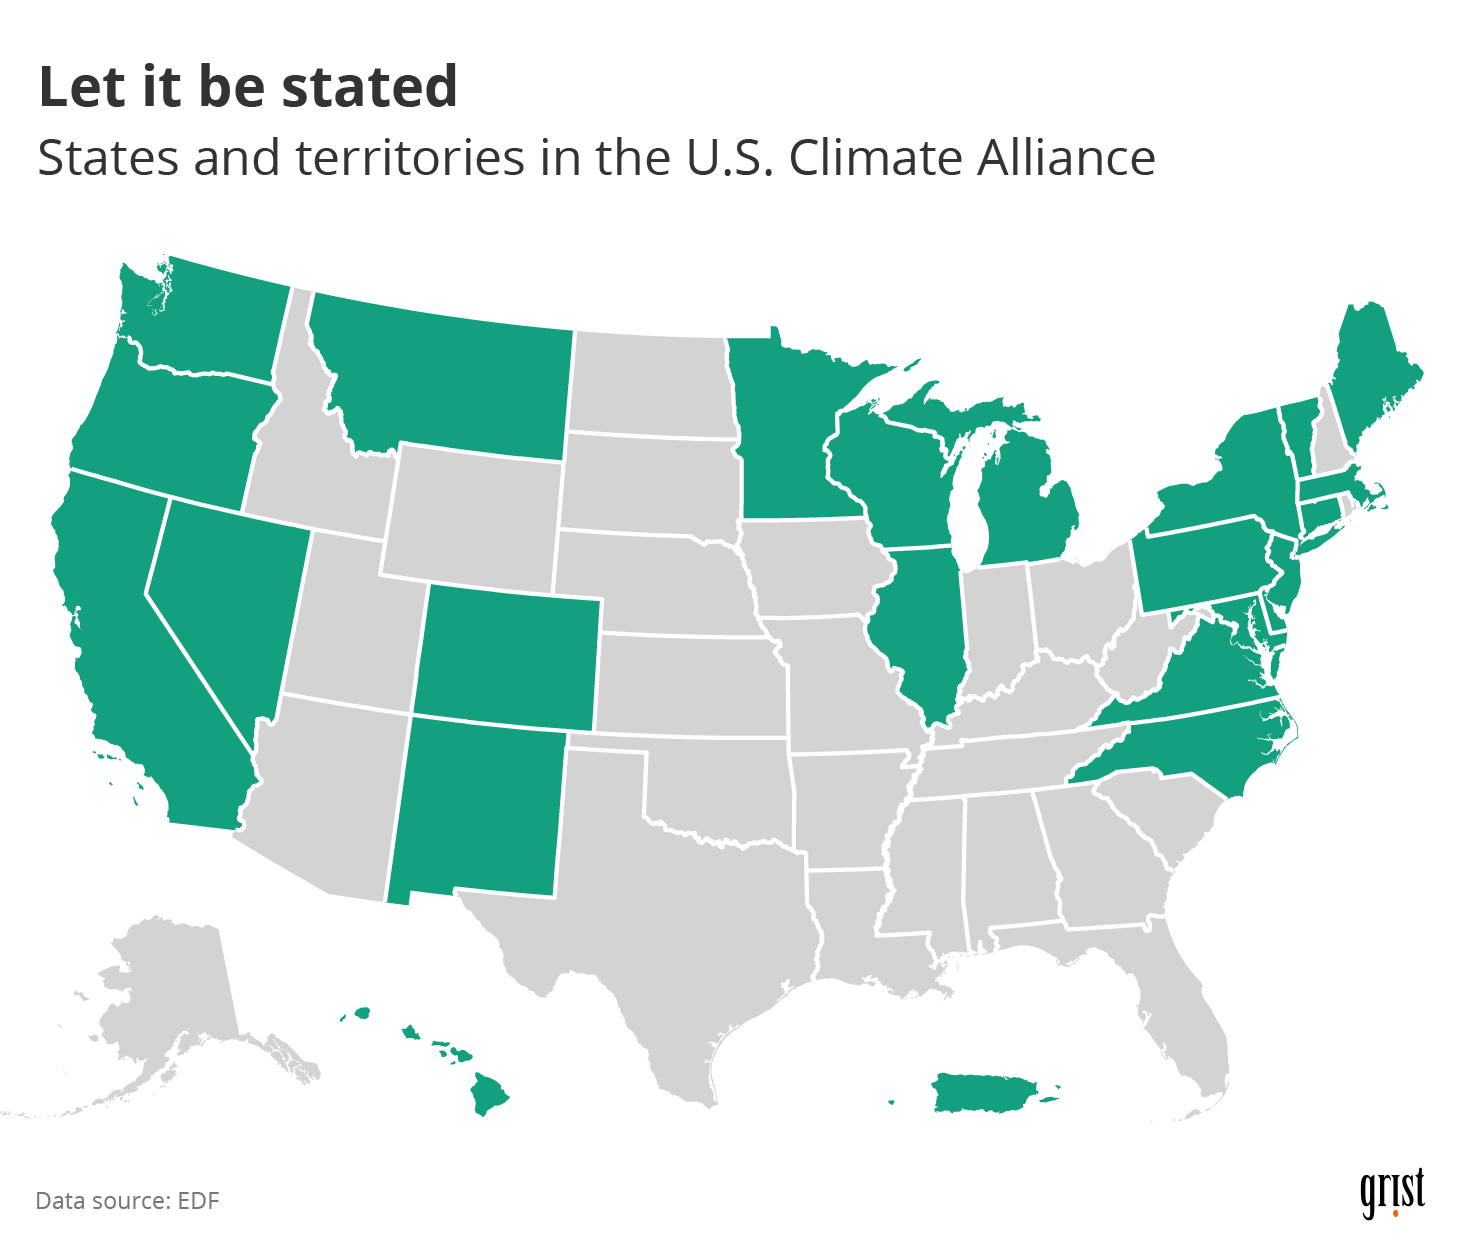 A map showing the states and territories in the U.S. Climate Alliance. Members include many states in the Northeast and on the West Coast, as well as Puerto Rico and Hawaii.